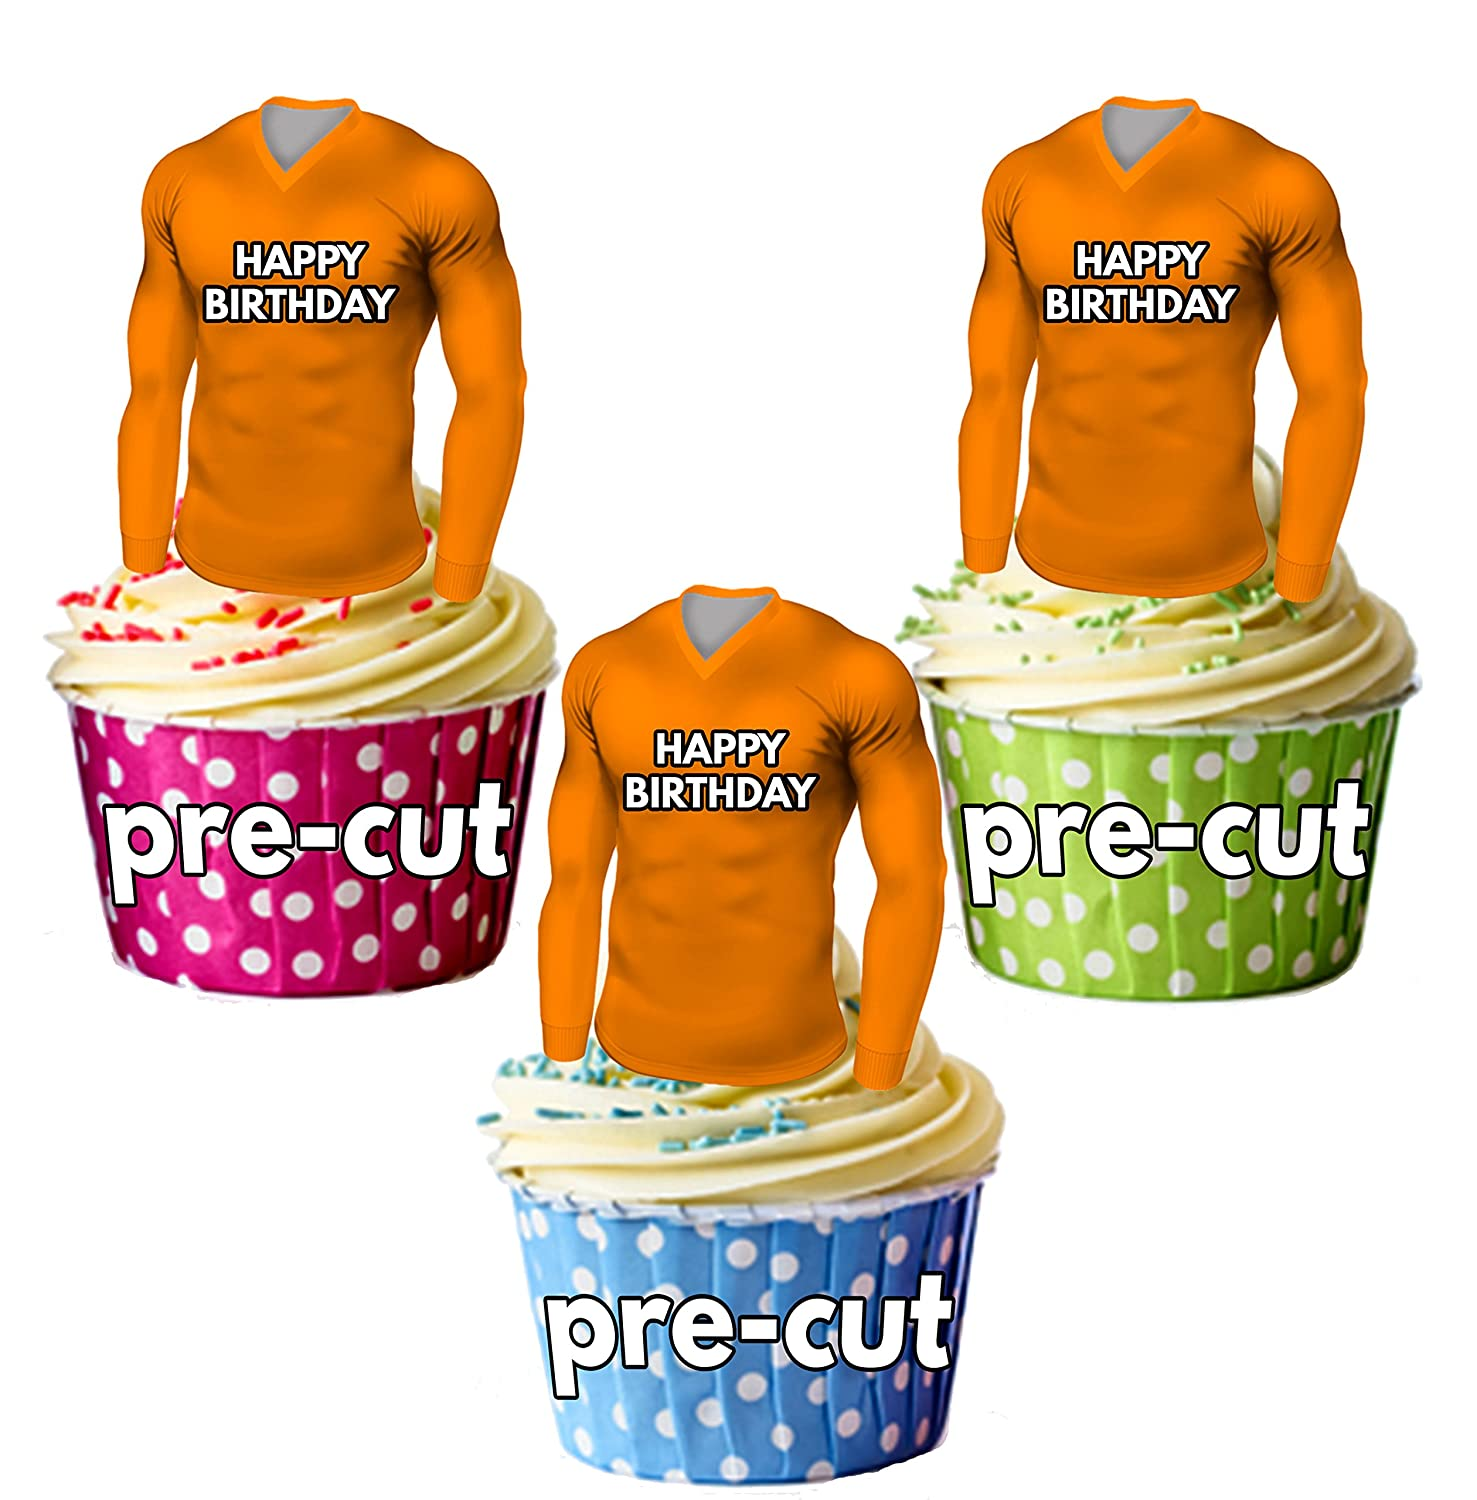 AK Giftshop PRECUT Happy Birthday Football Shirts - Edible Cupcake Toppers/Cake Decorations Dundee United Colours (Pack of 12)